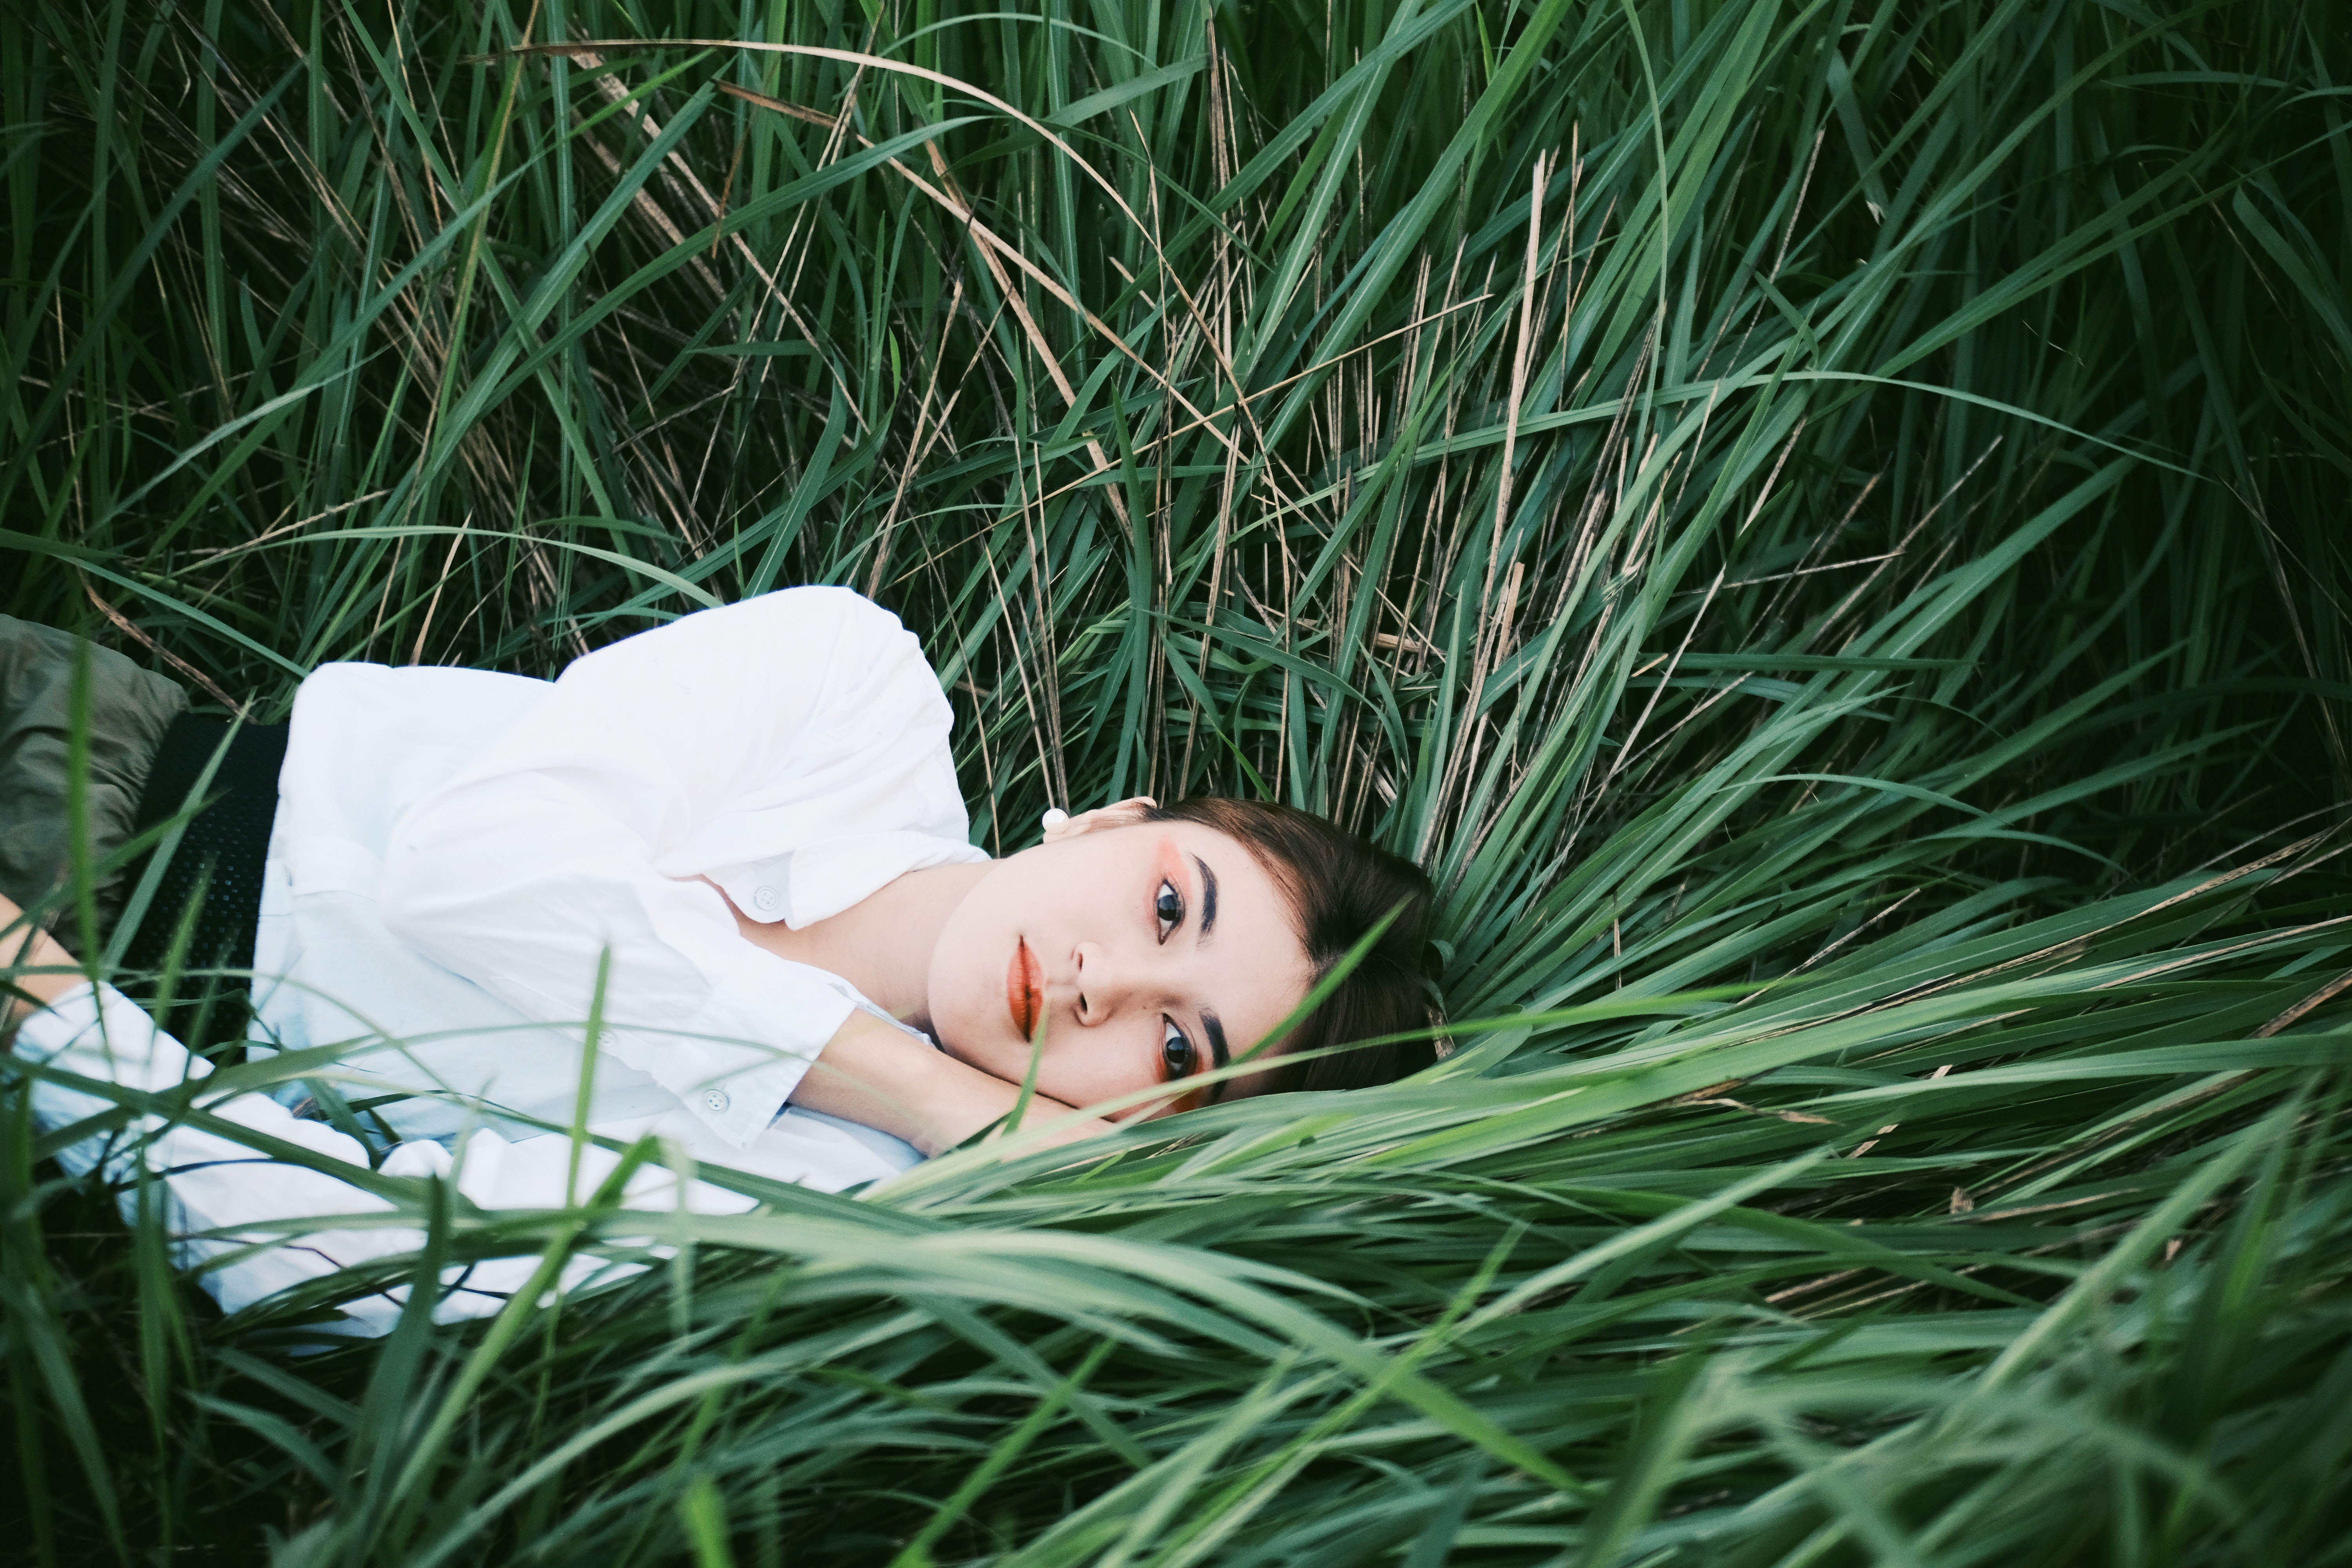 Woman Lying Down On Blades Of Grass Free Stock Photo